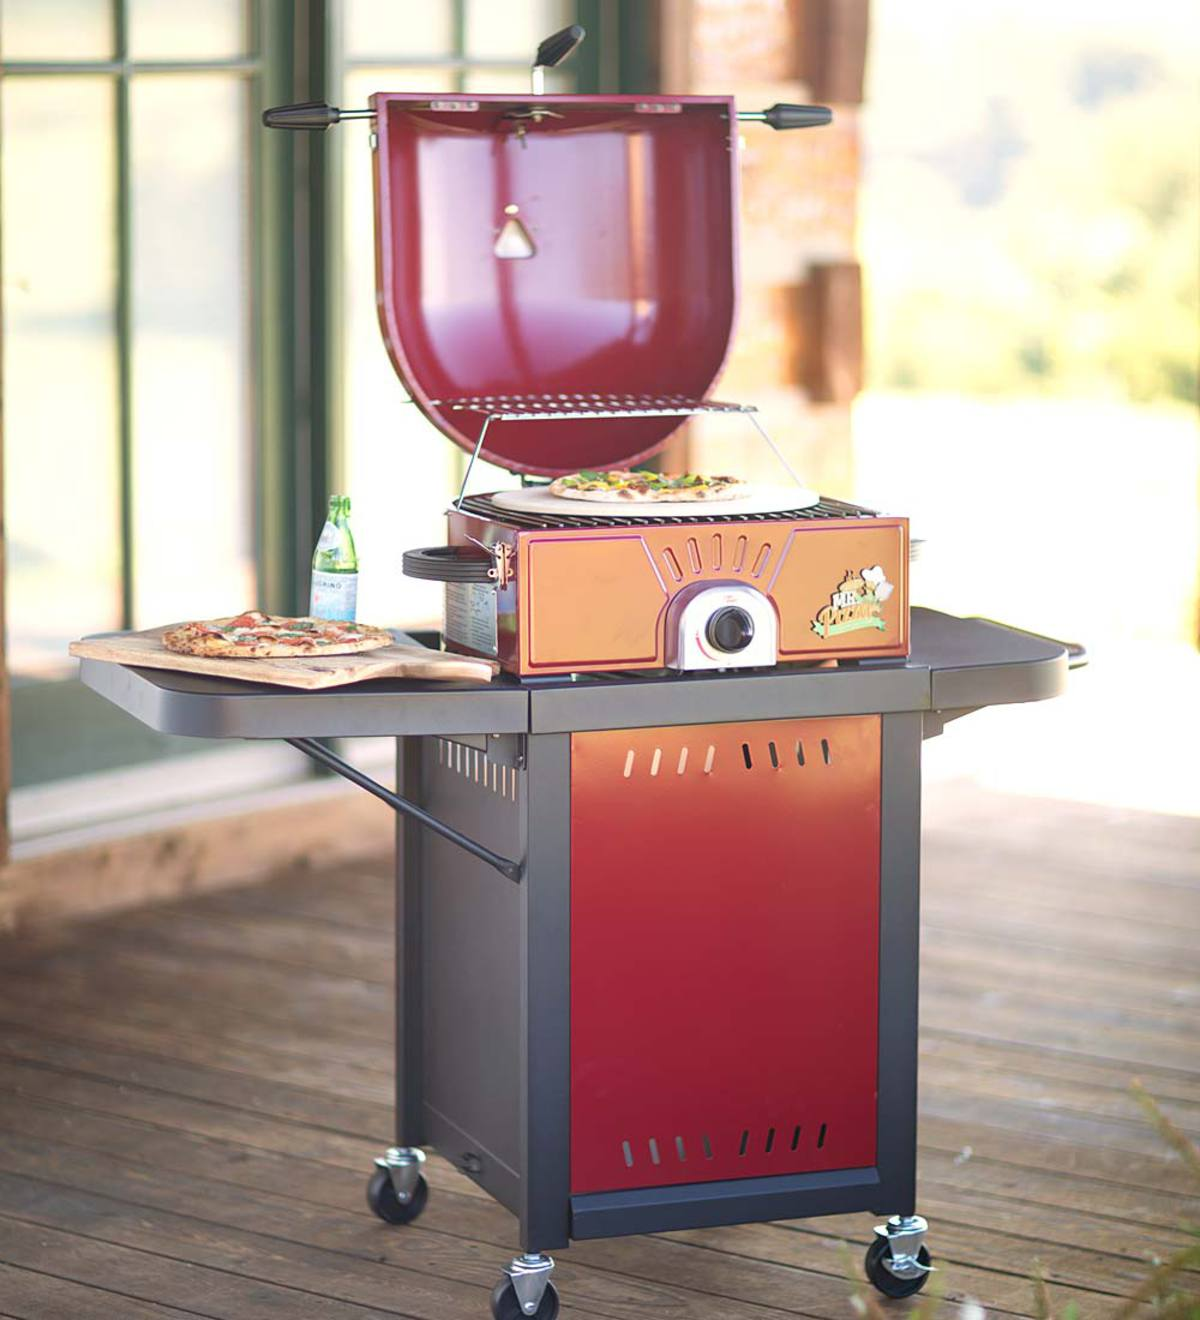 Novelty Pizza Oven/Grill Cart